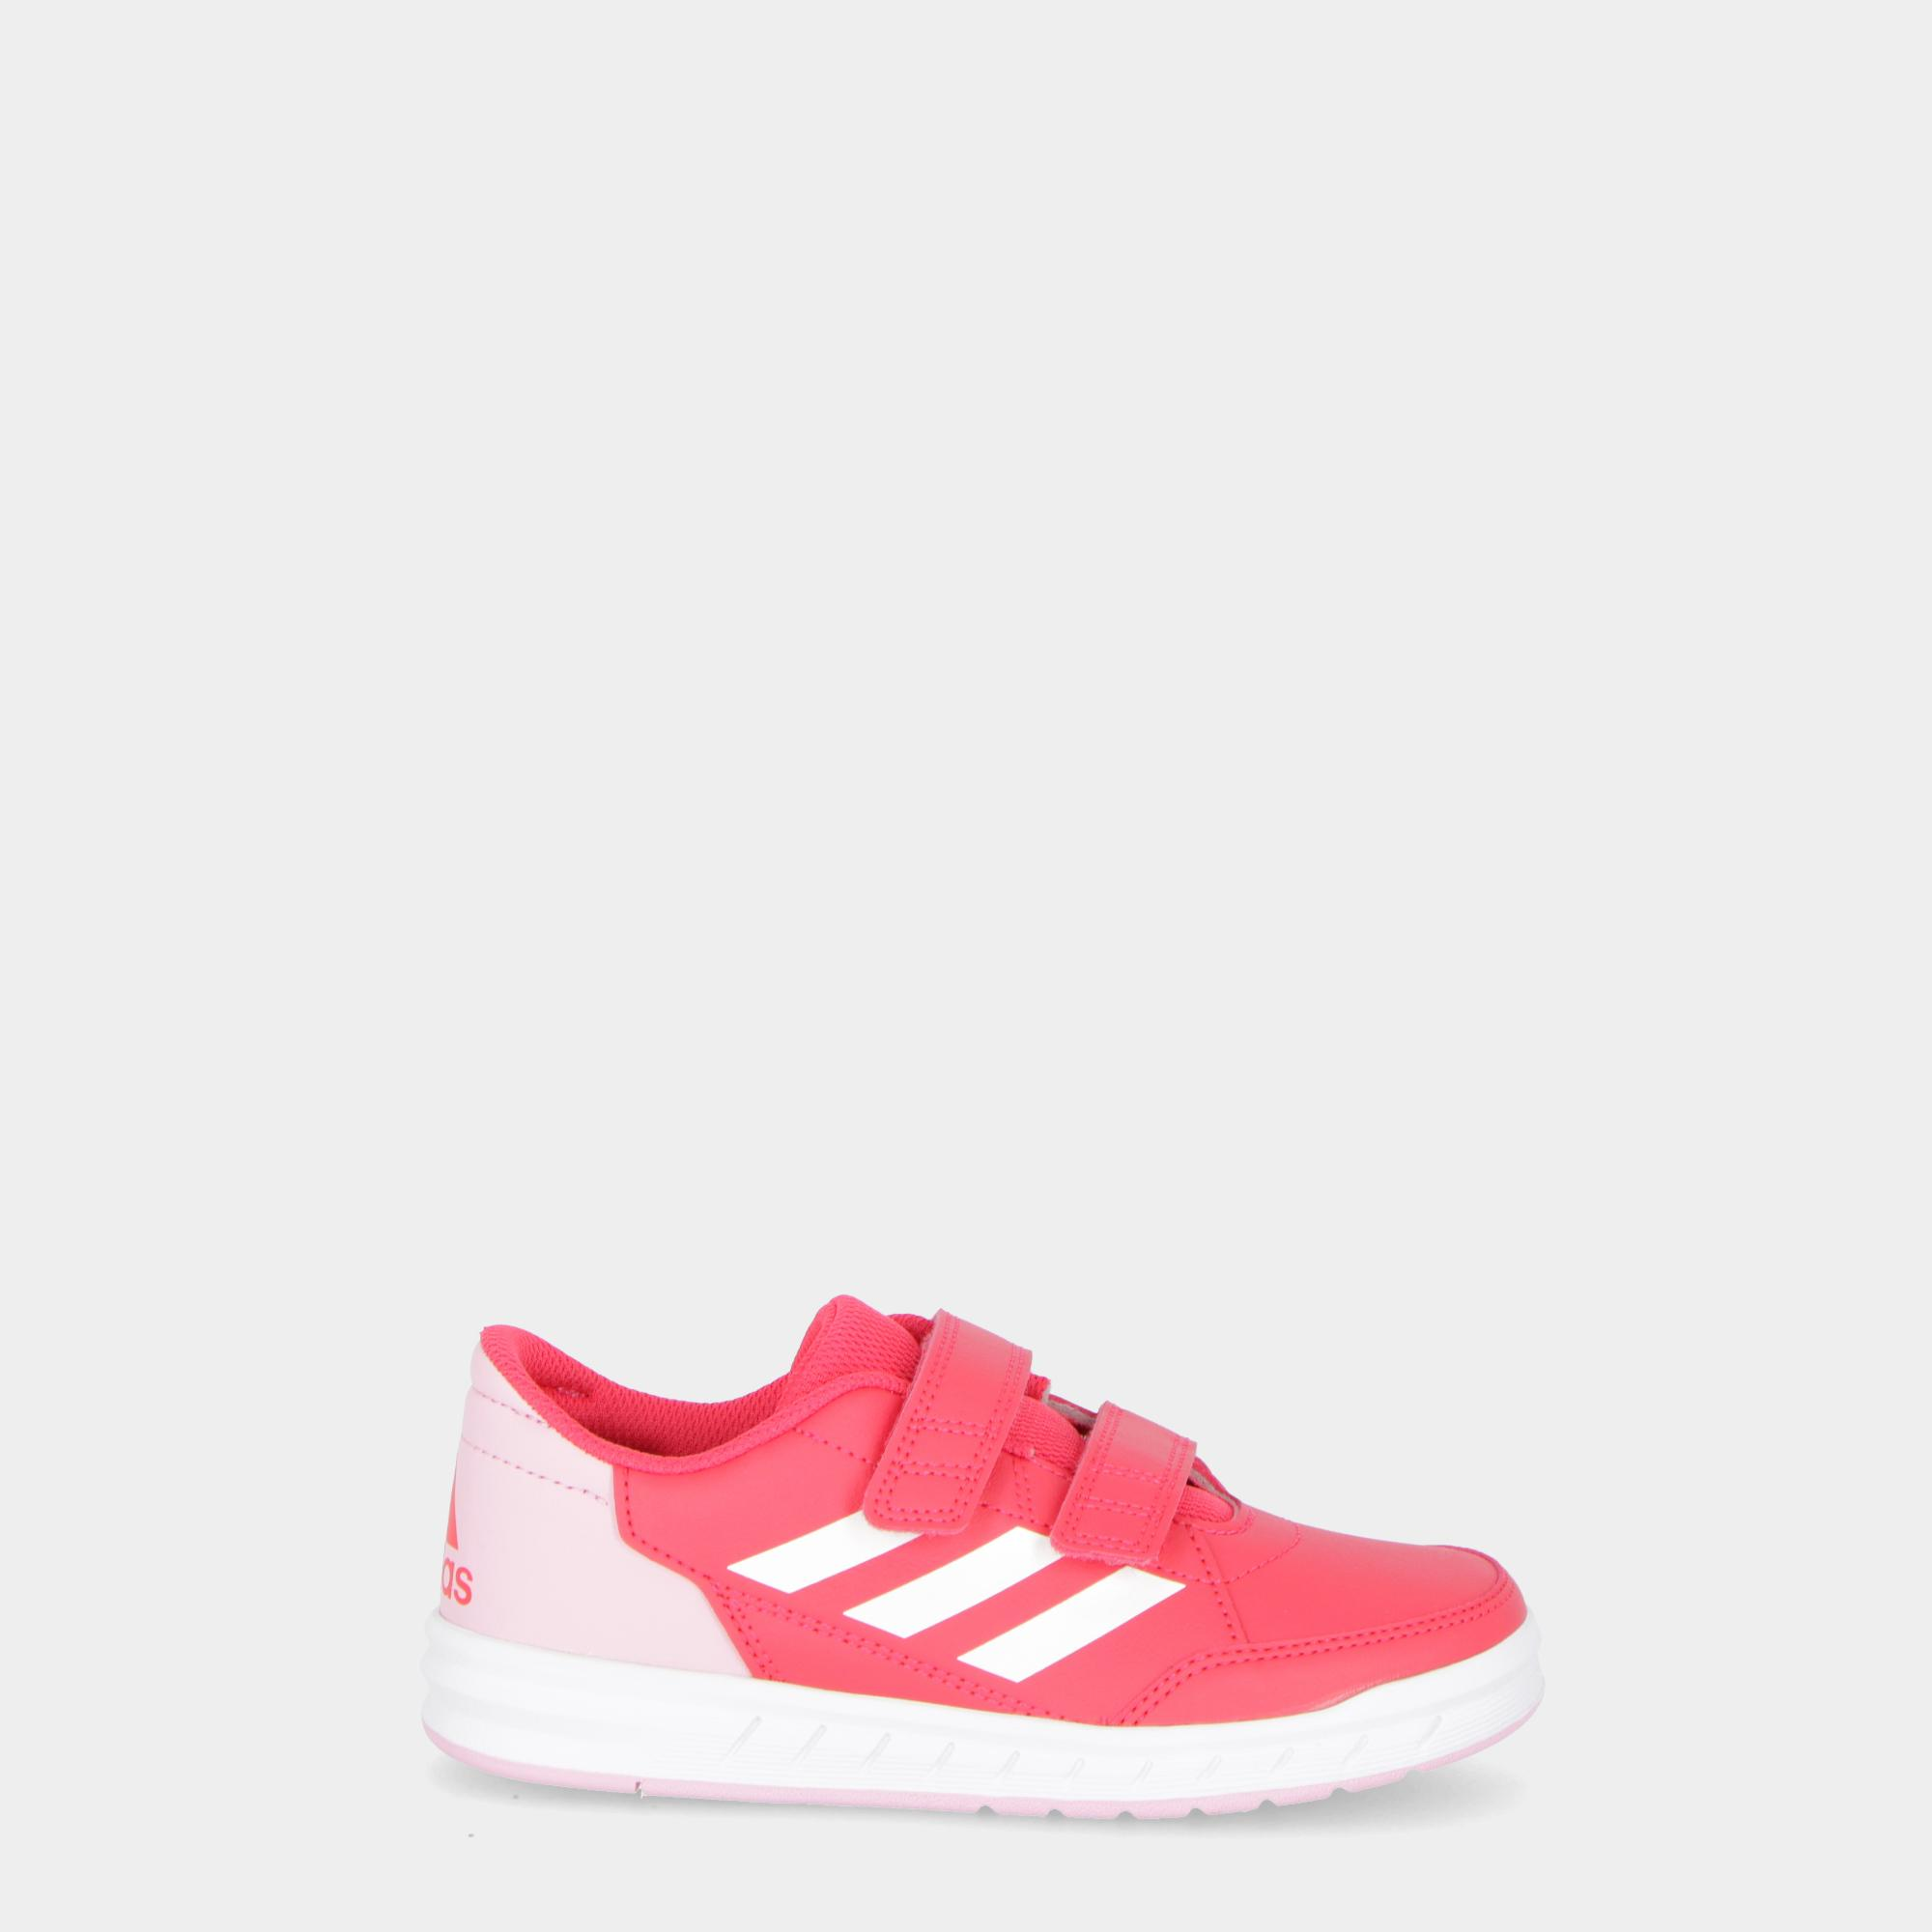 finest selection 1c983 00df8 Adidas Altasport Cf K - Kids Pink white pink